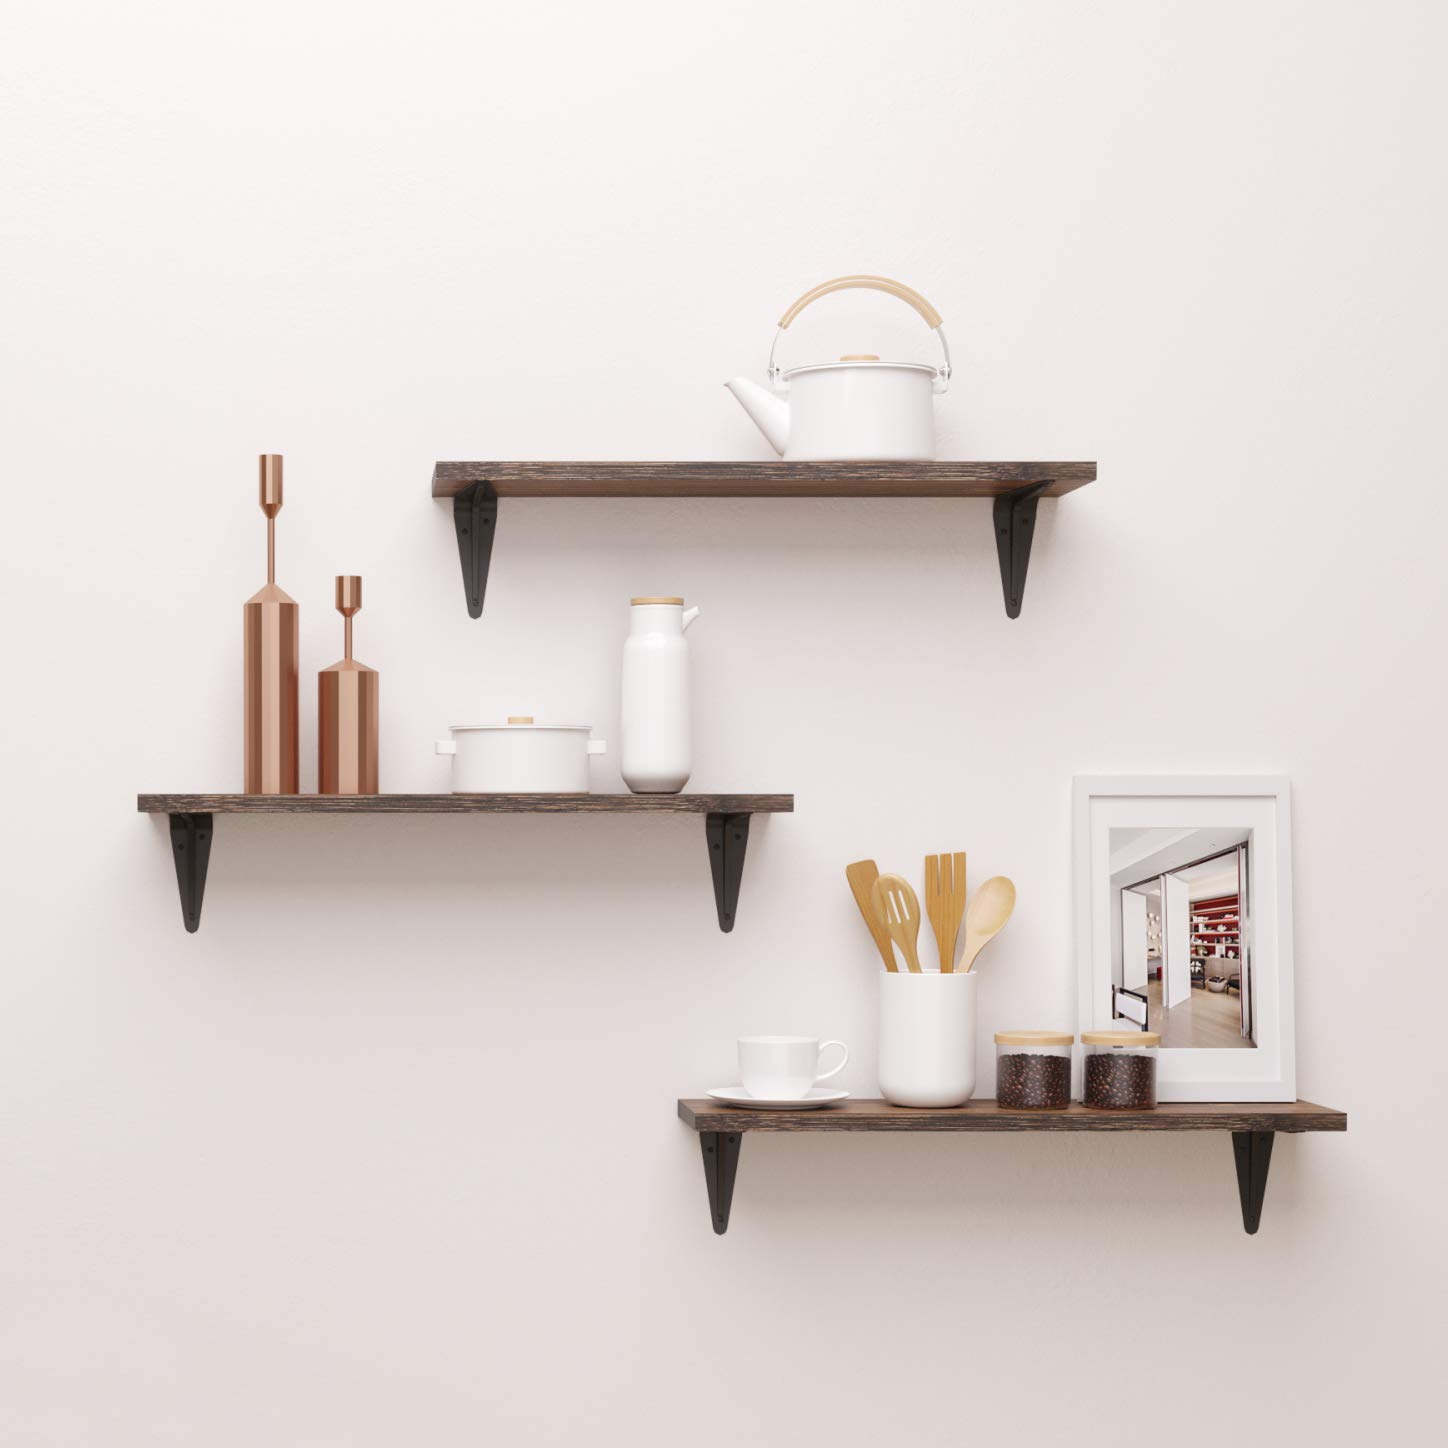 bamfox floating shelves wall shelf set mounted large with storage for bedroom bathroom living room kitchen office home foldable desks small spaces prepac desk wood bracket glass